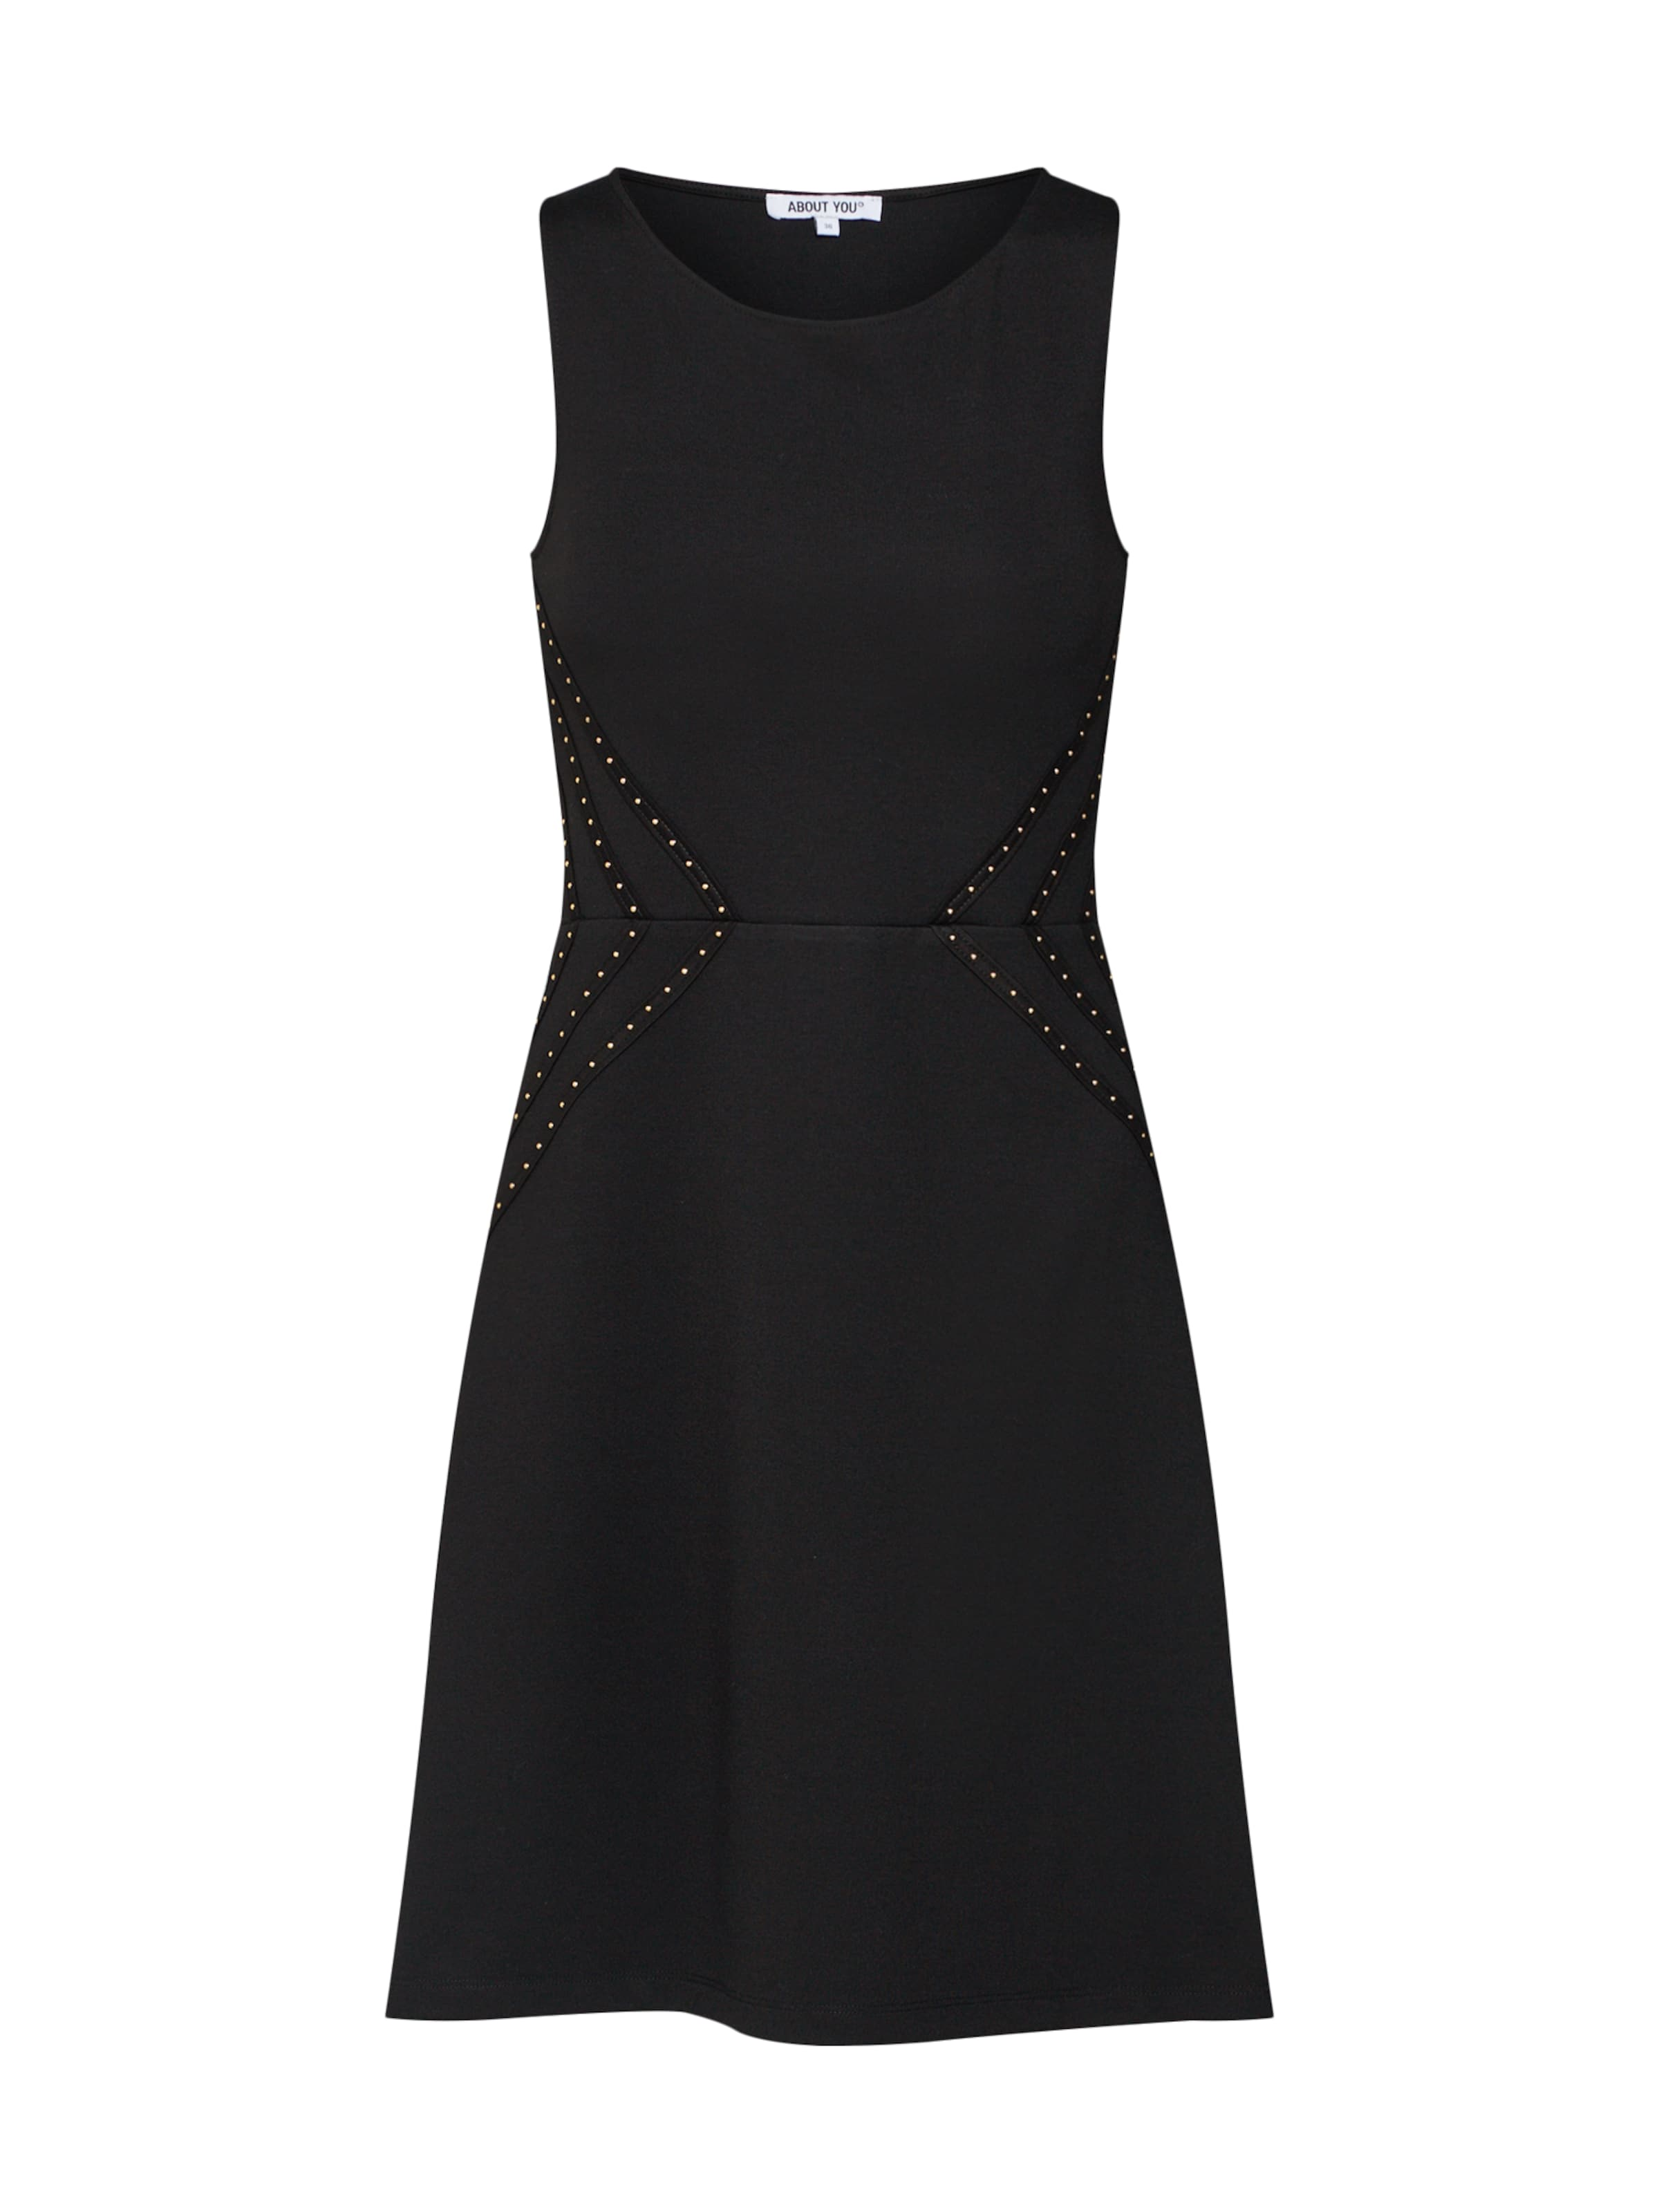 En Noir About Robe You 'alea' qSUzpGjVLM